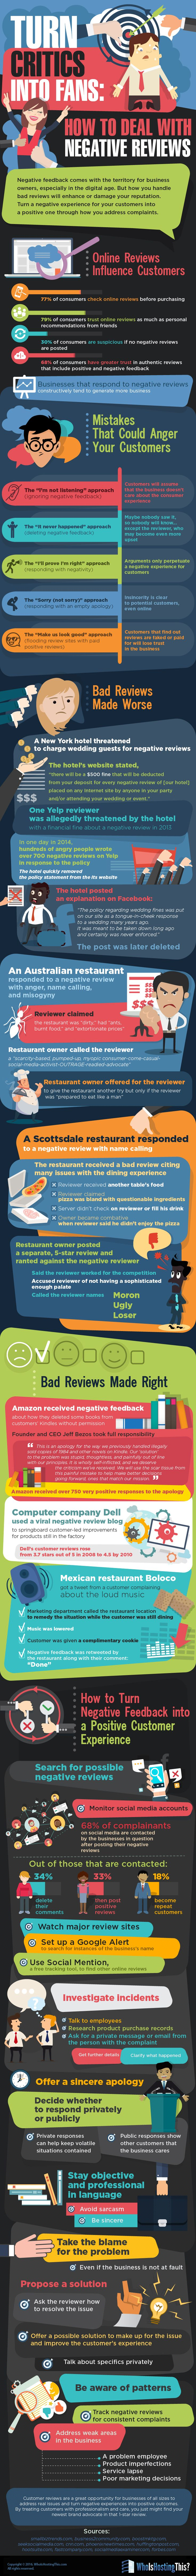 Turn Critics Into Fans: How To Deal With Negative Reviews #Infographic #HowTo